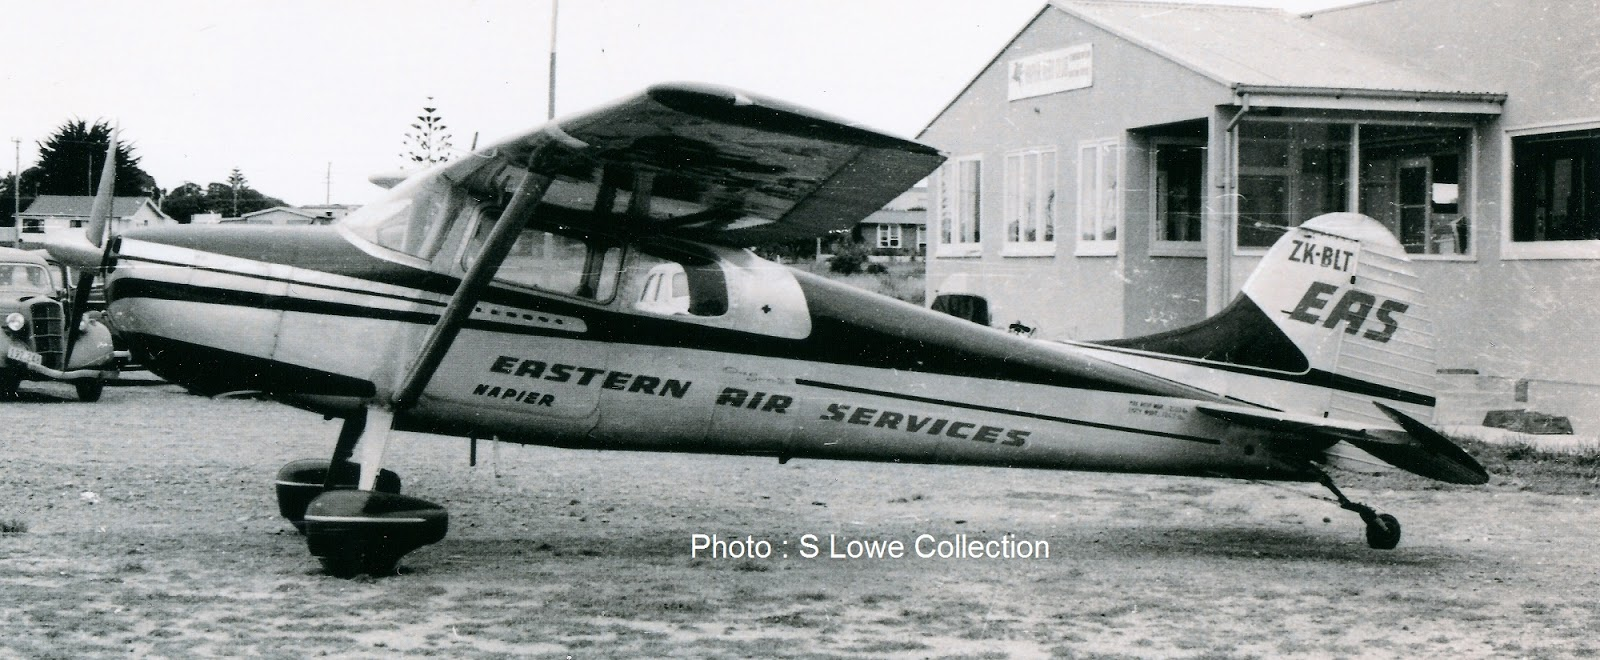 Mainstay Of The Service Cessna 170b Zk Blt At Napier Photographer Unknown